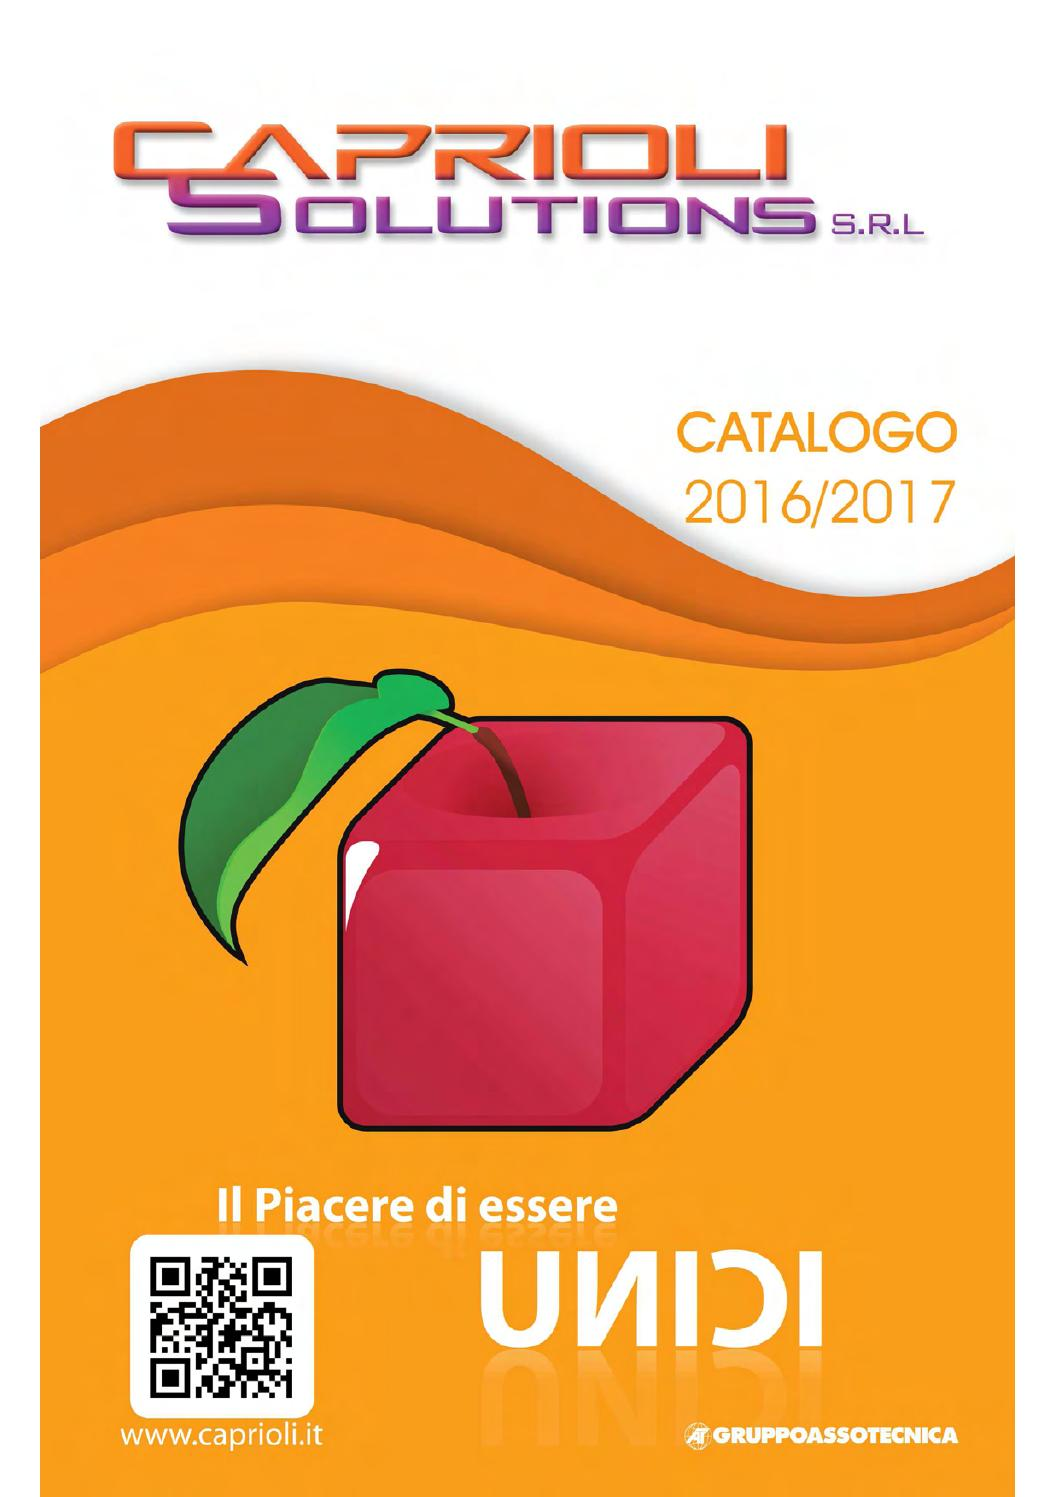 Catalogo 2016 1° parte by Caprioli Solutions Srl issuu